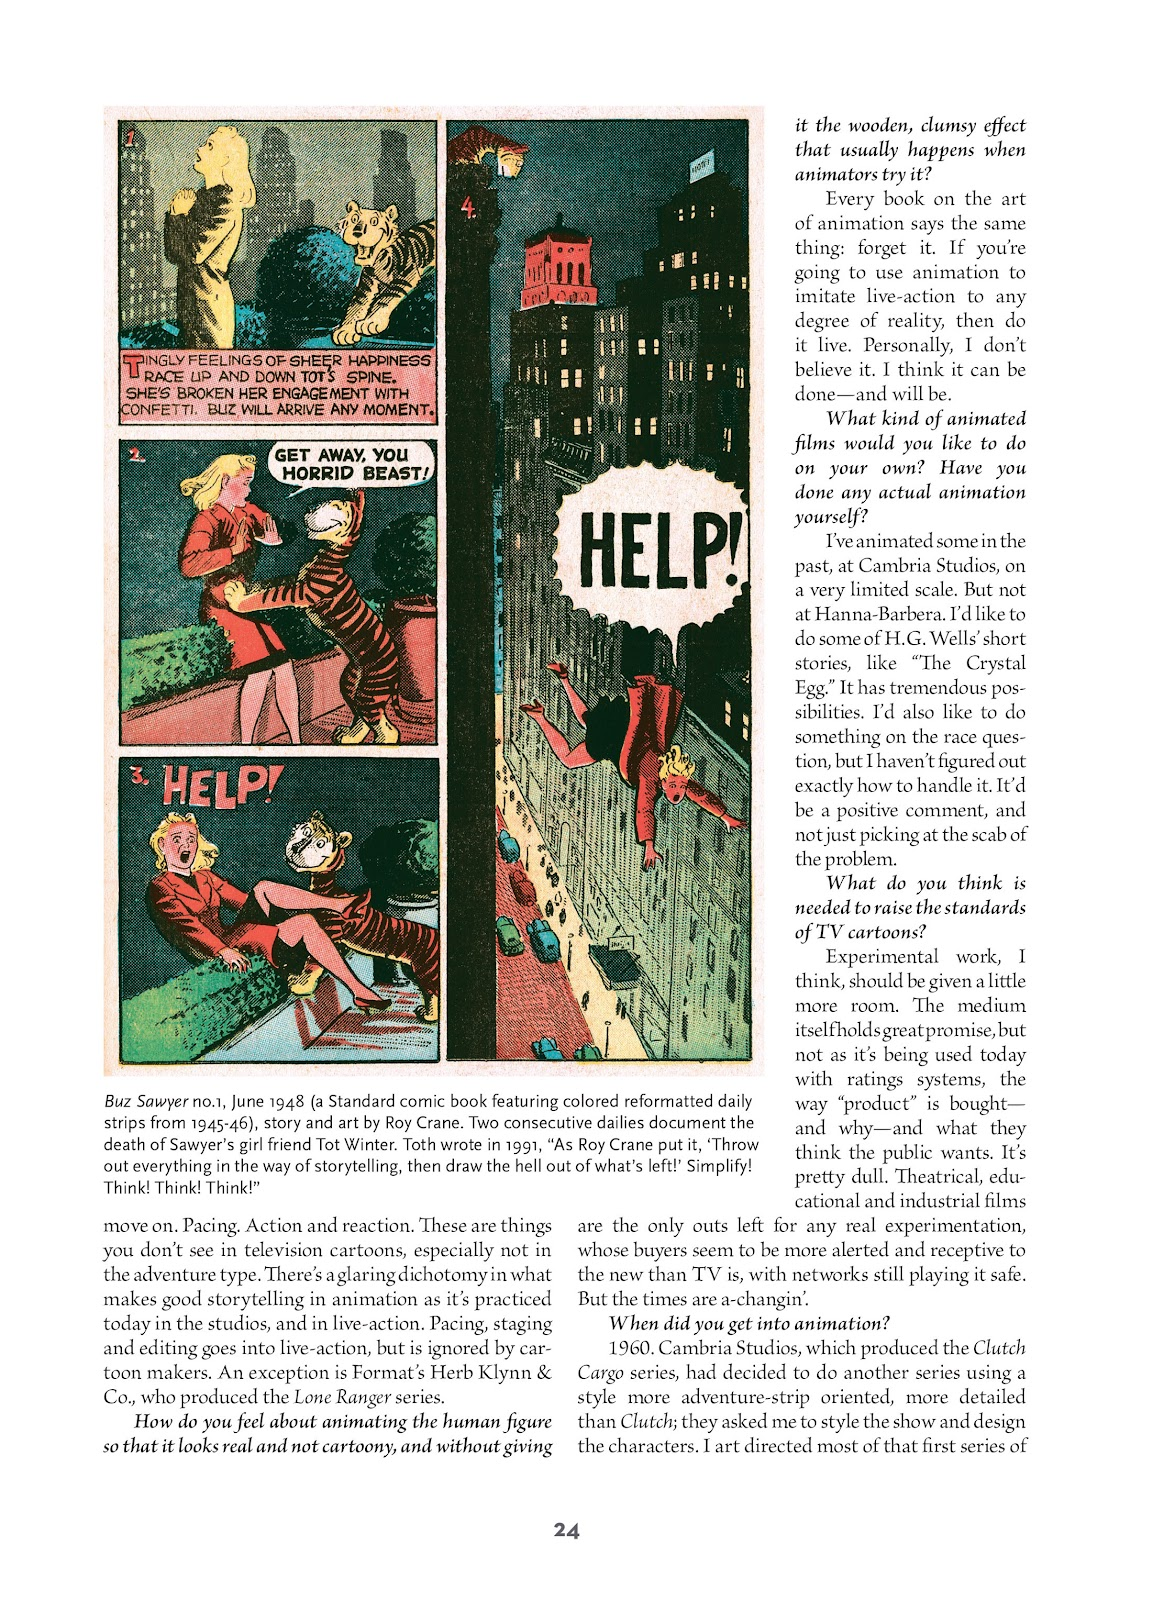 Read online Setting the Standard: Comics by Alex Toth 1952-1954 comic -  Issue # TPB (Part 1) - 23